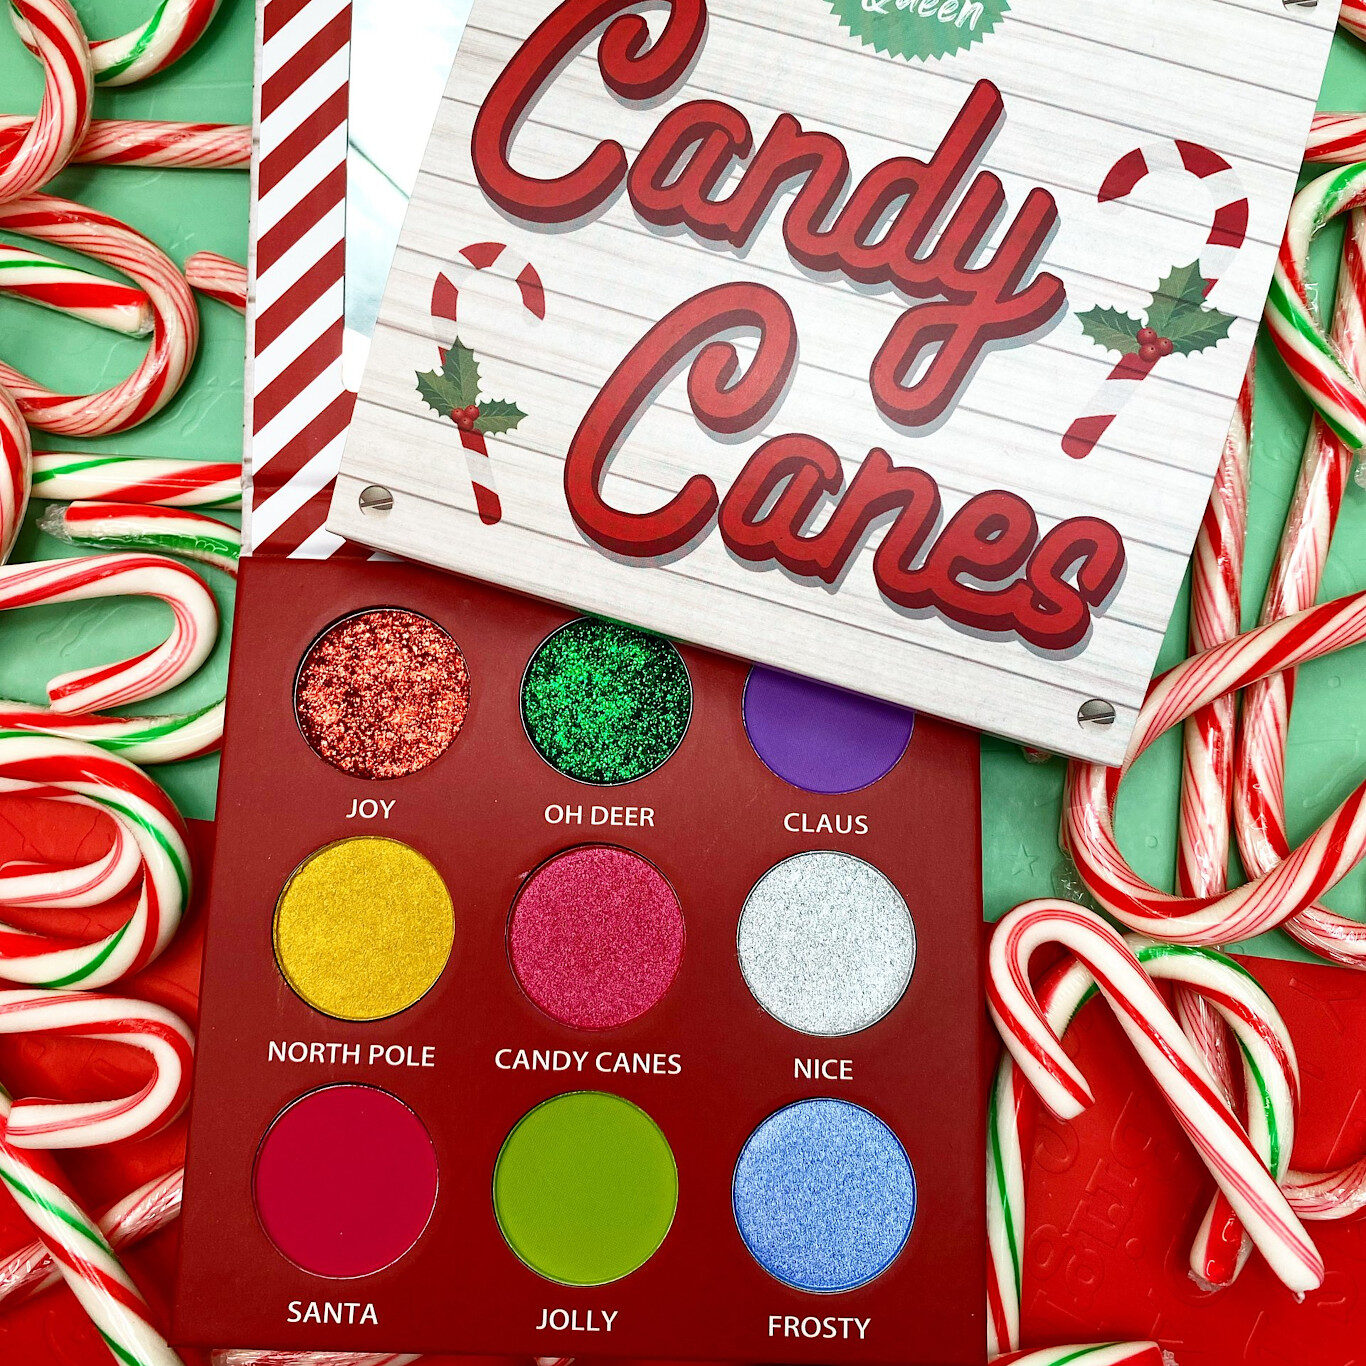 Peachy Queen Candy Canes Palette Open & Closed Promo